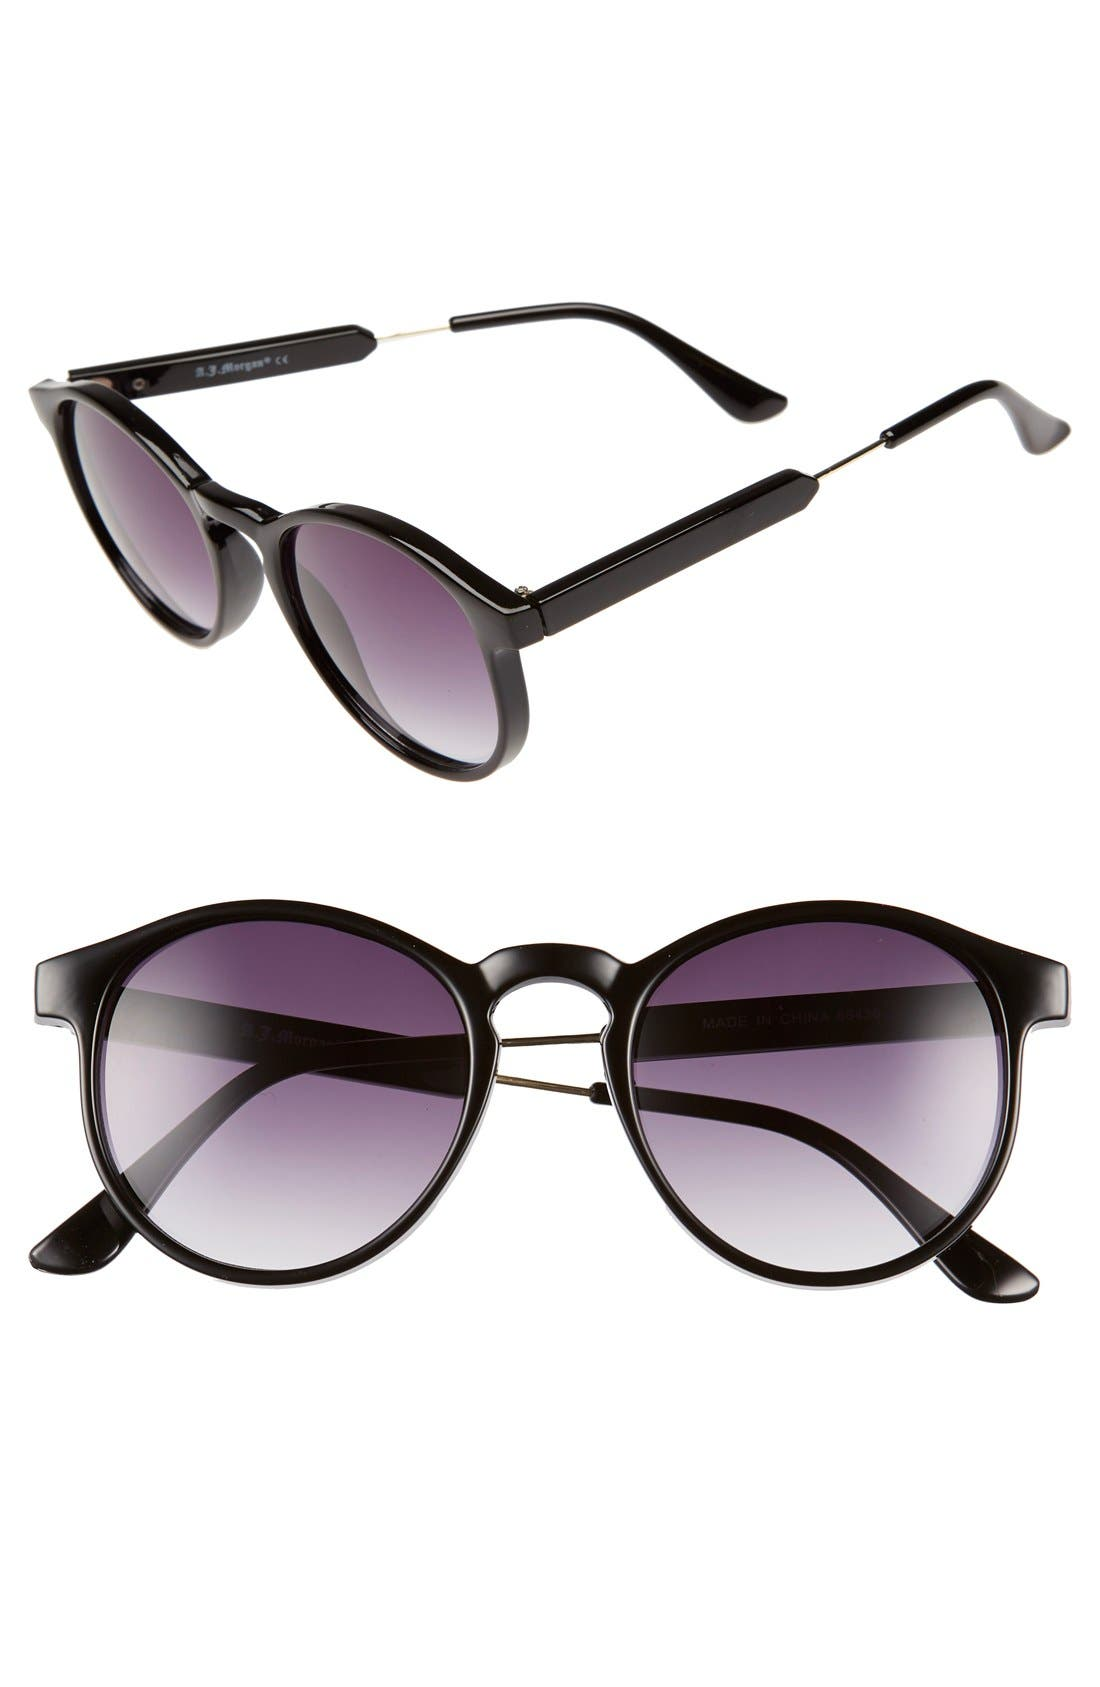 A.J. MORGAN 50mm Sunglasses